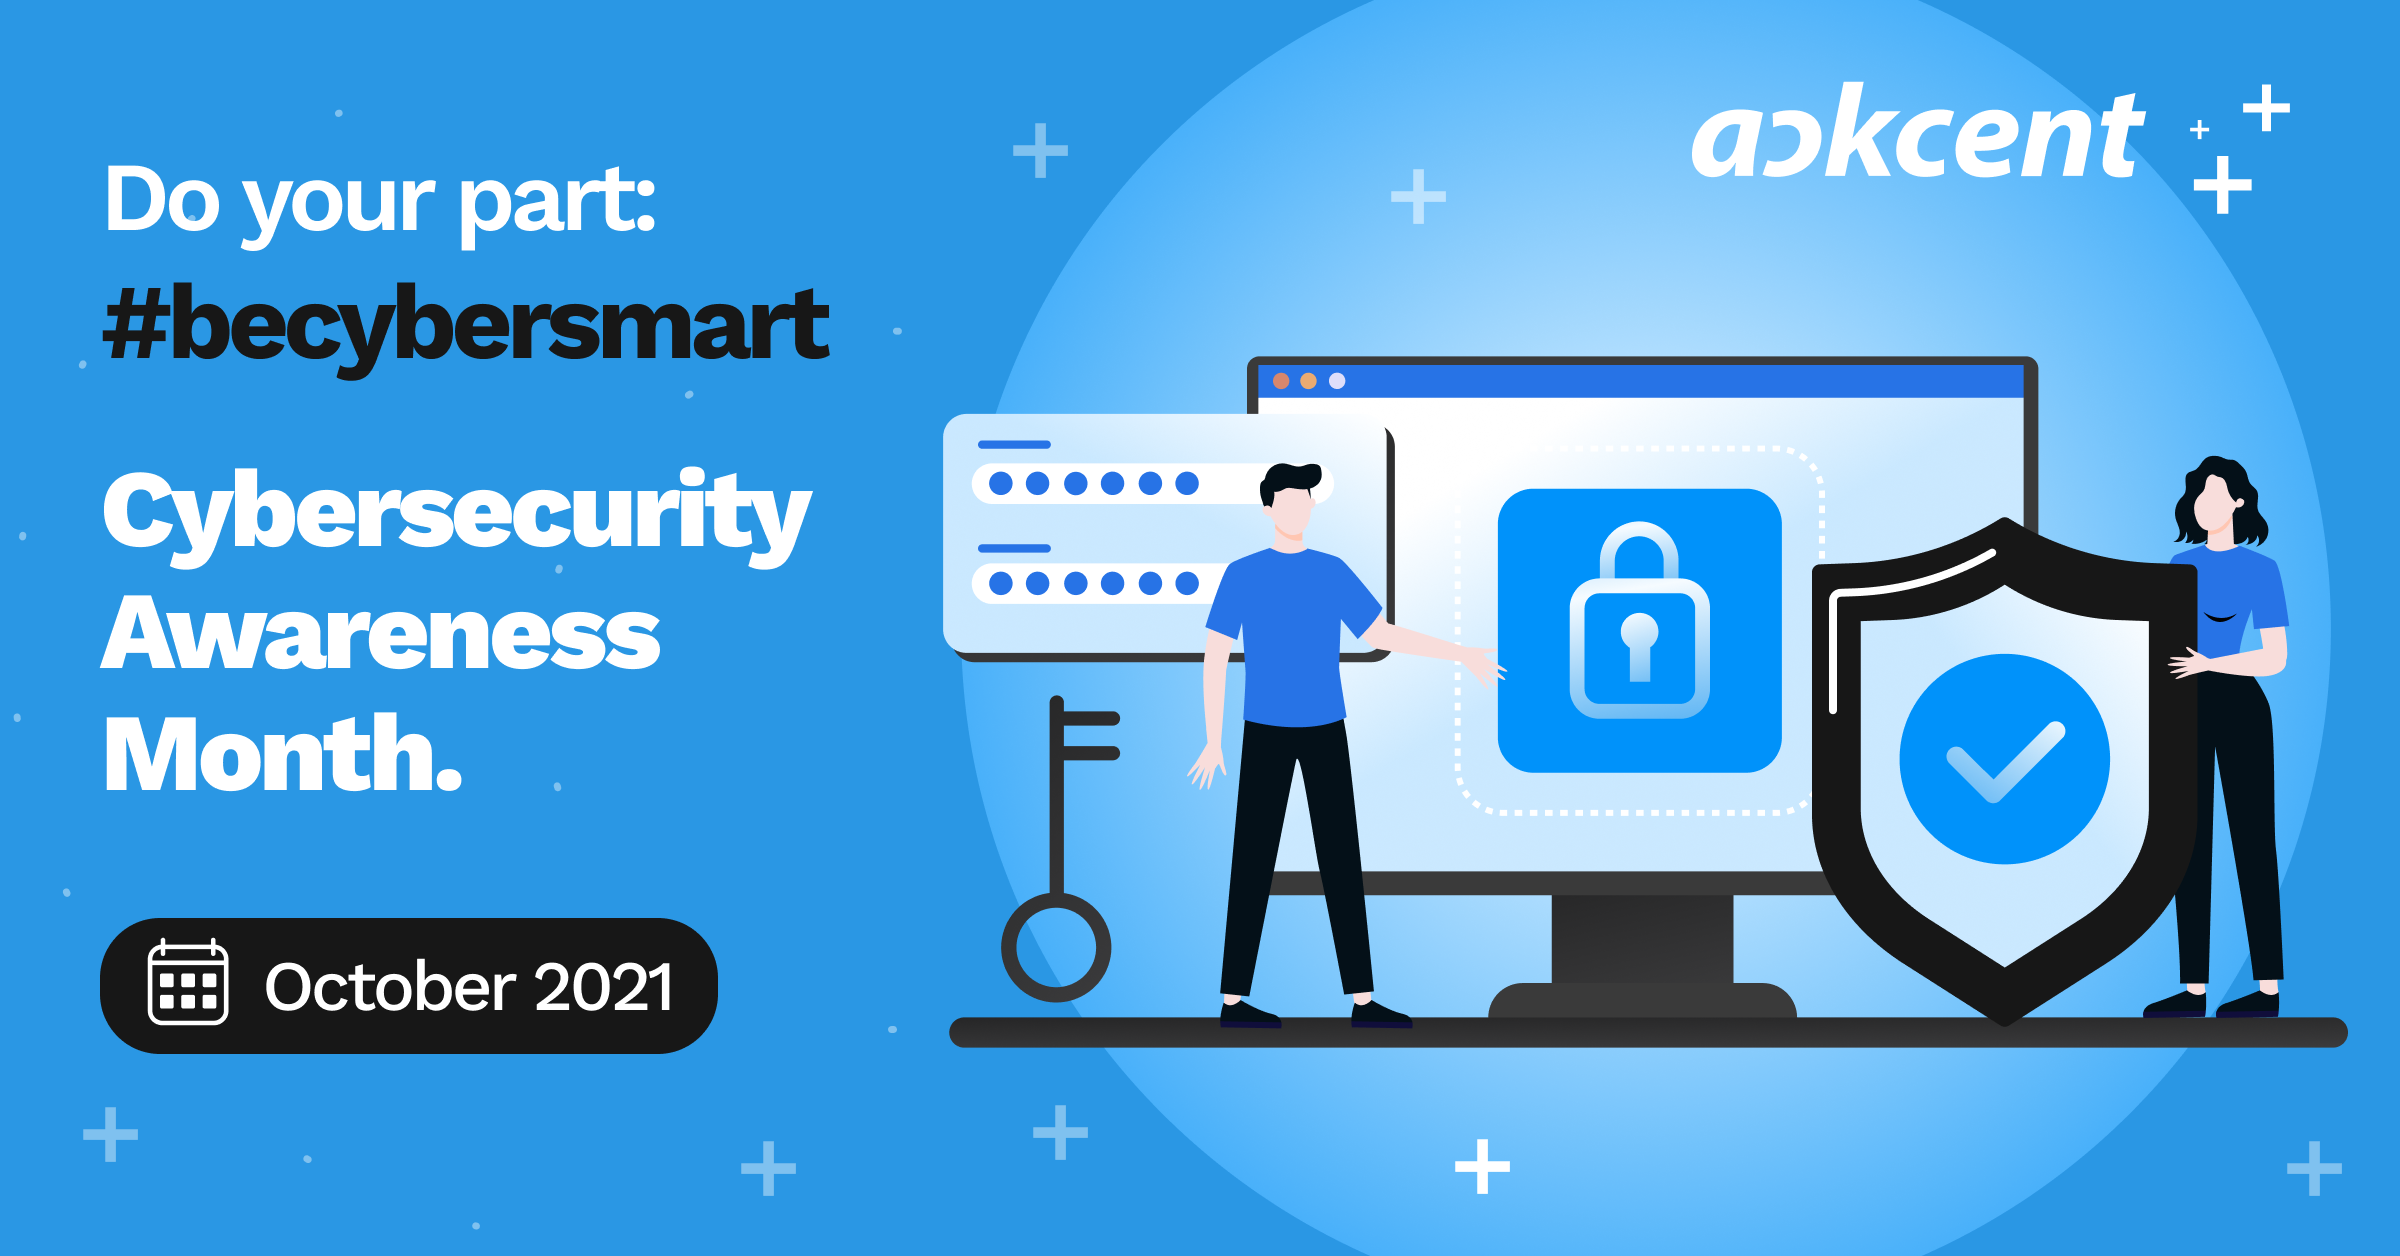 October is here, and that means Cybersecurity Awareness Month!